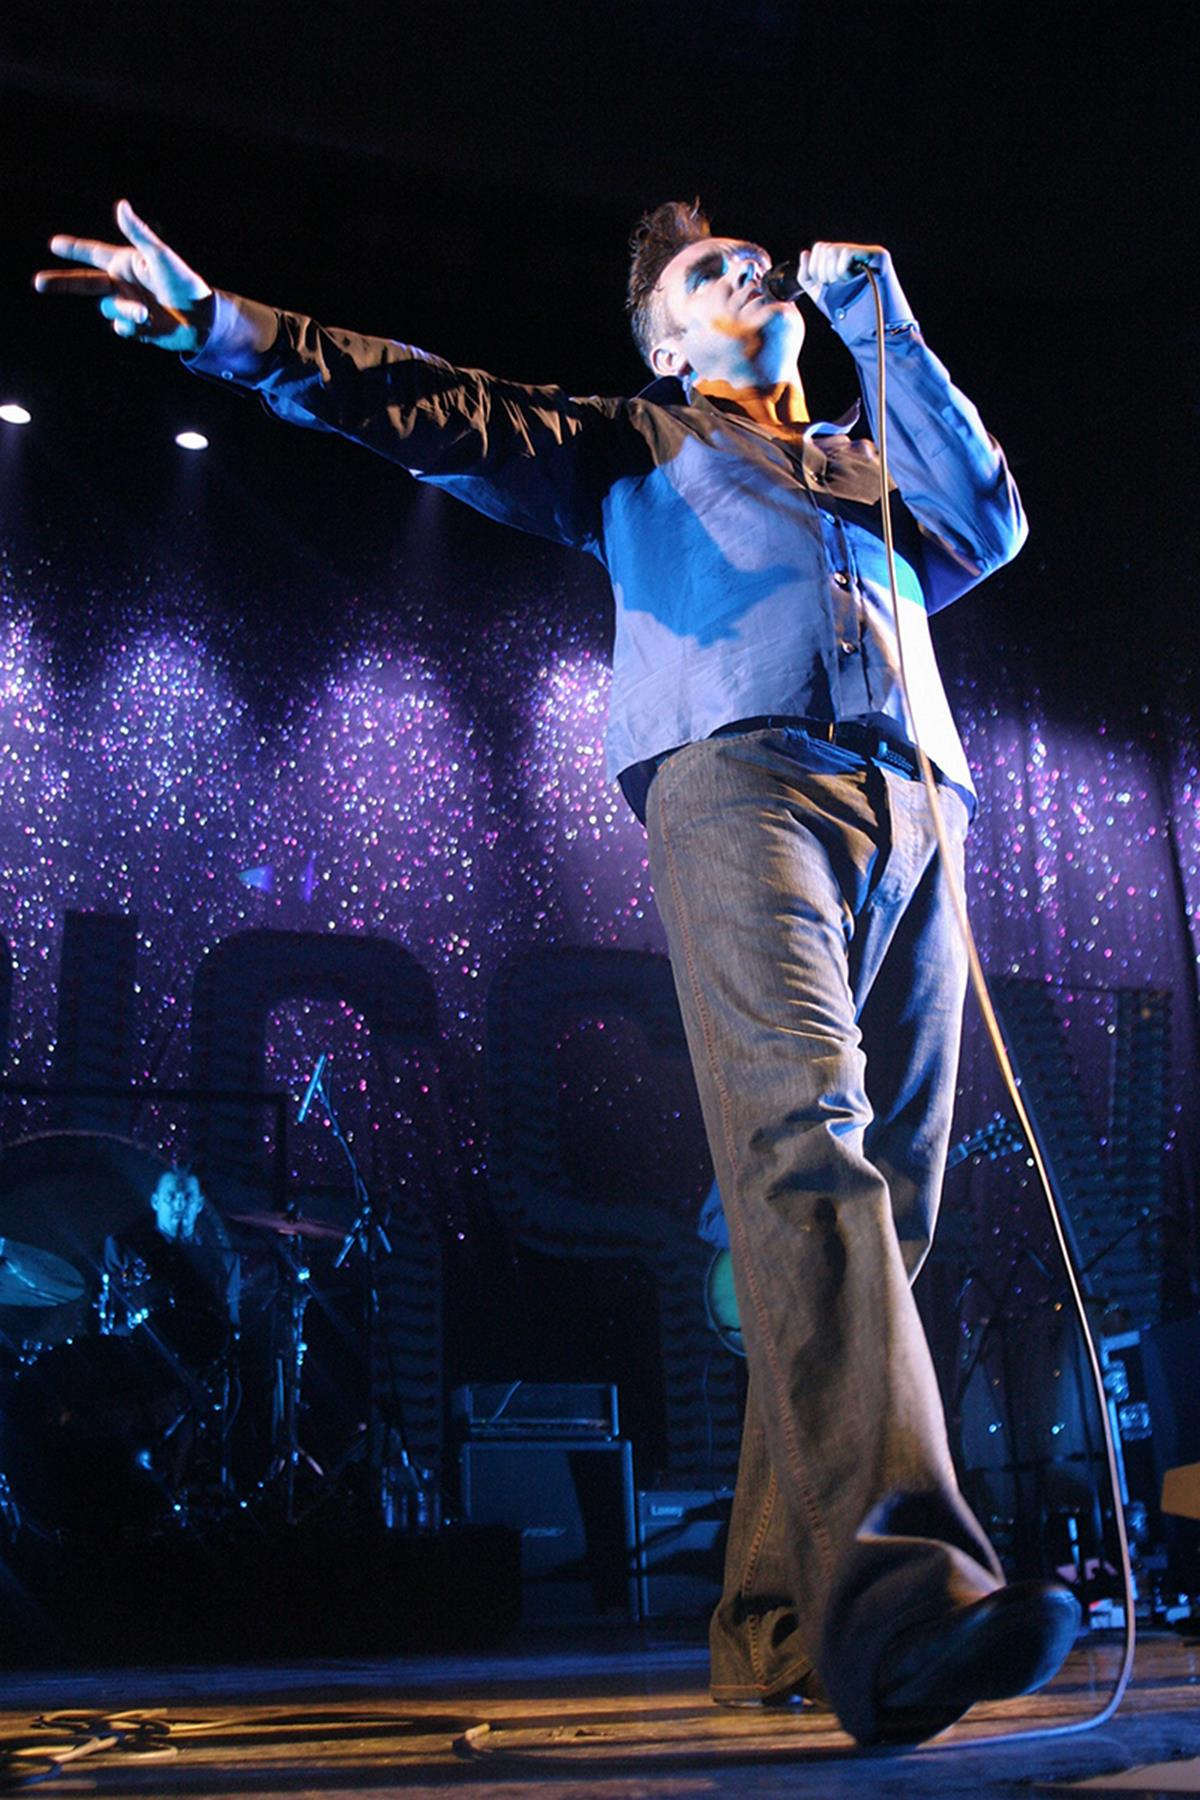 Morrissey performs at his own Meltdown Festival 2004 © Mark Mawston. To buy a limited edition print of this photograph please contact Rockarchive at info@rockarchive.com